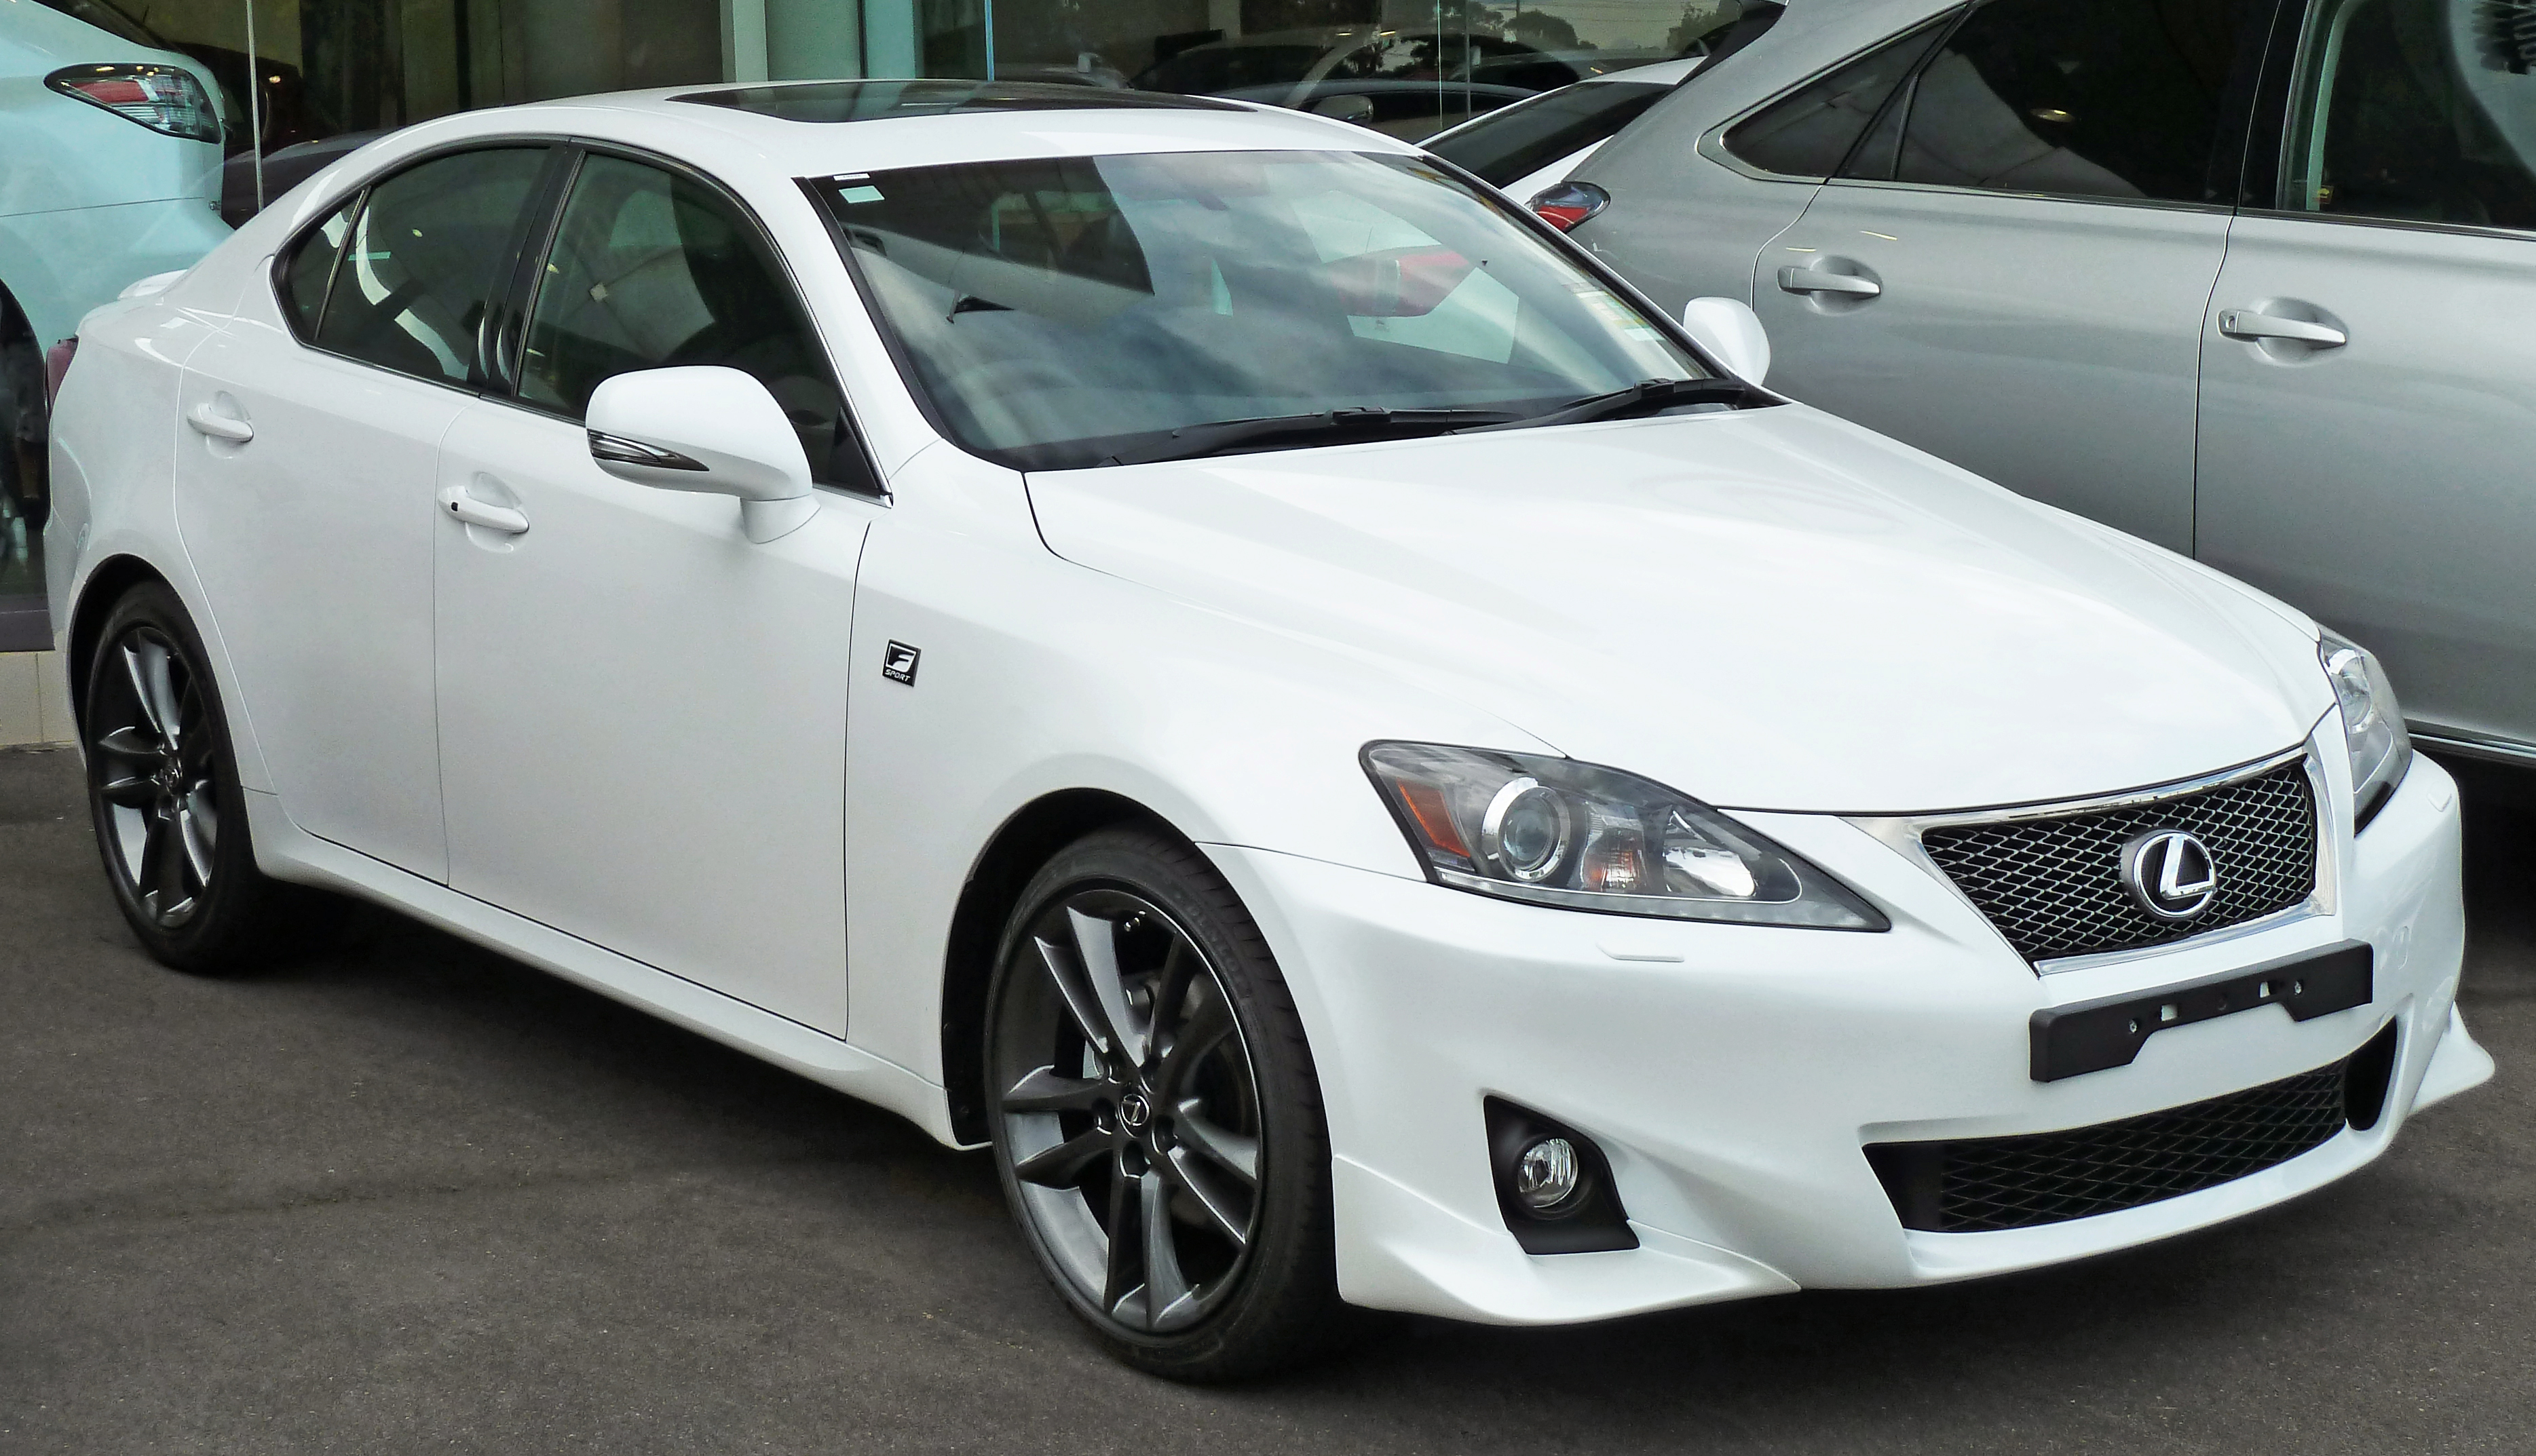 Lexus IS 250 2011 #1